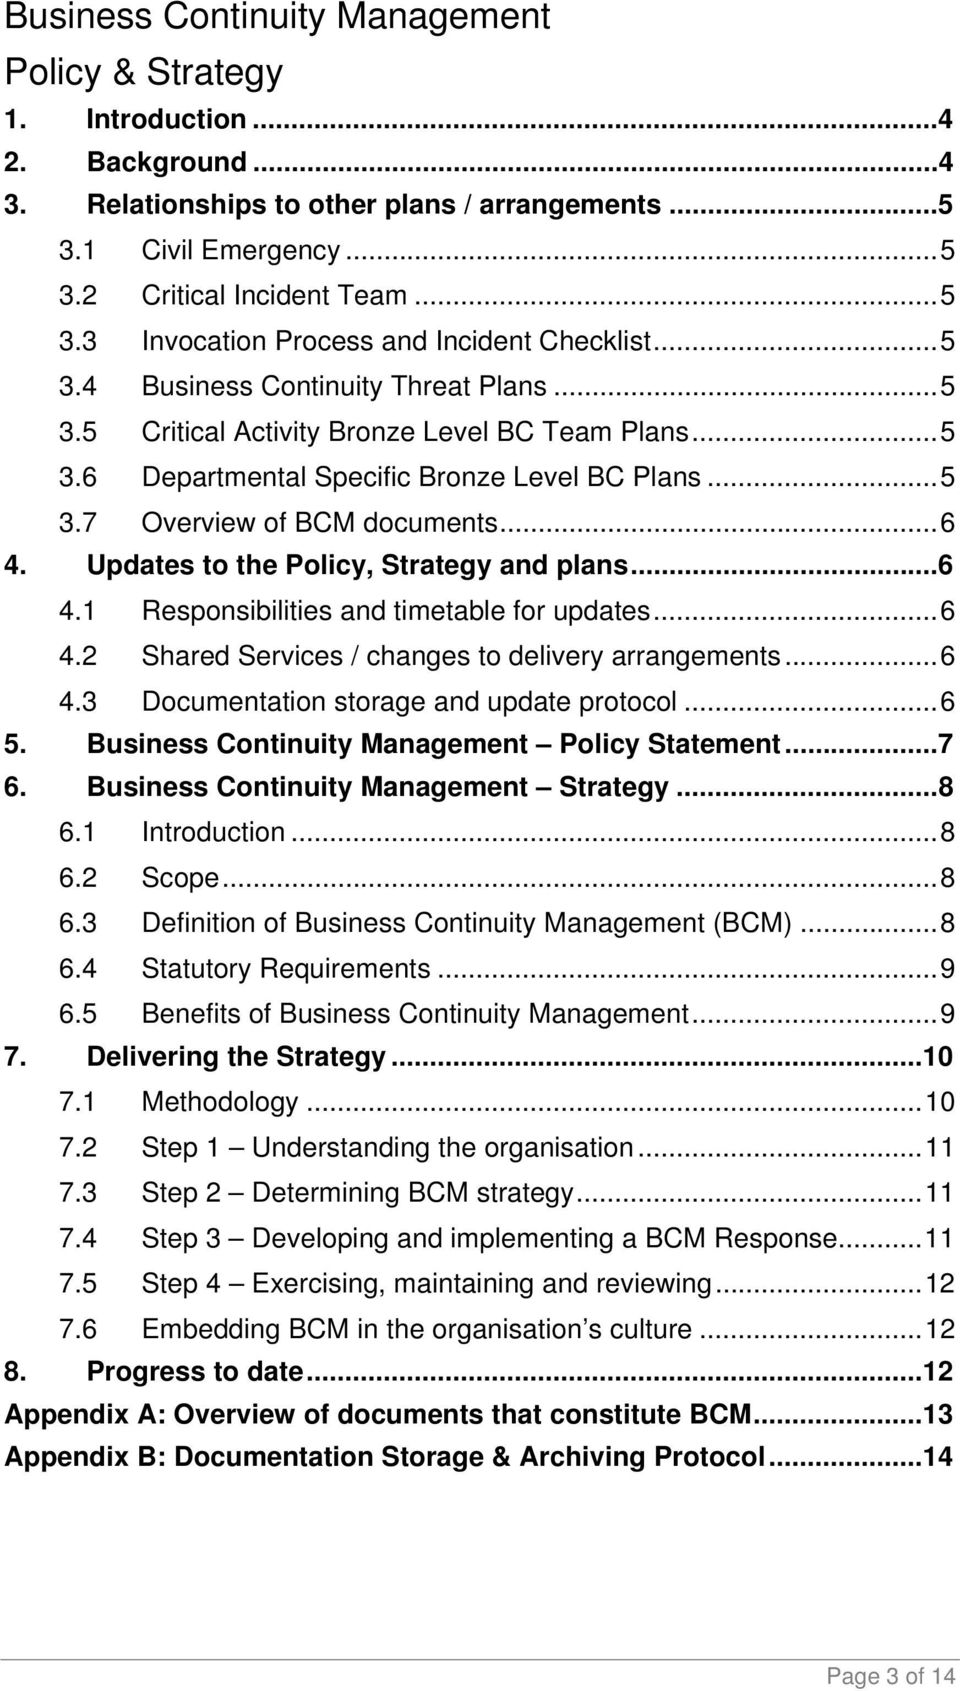 Updates to the Policy, Strategy and plans...6 4.1 Responsibilities and timetable for updates...6 4.2 Shared Services / changes to delivery arrangements...6 4.3 Documentation storage and update protocol.